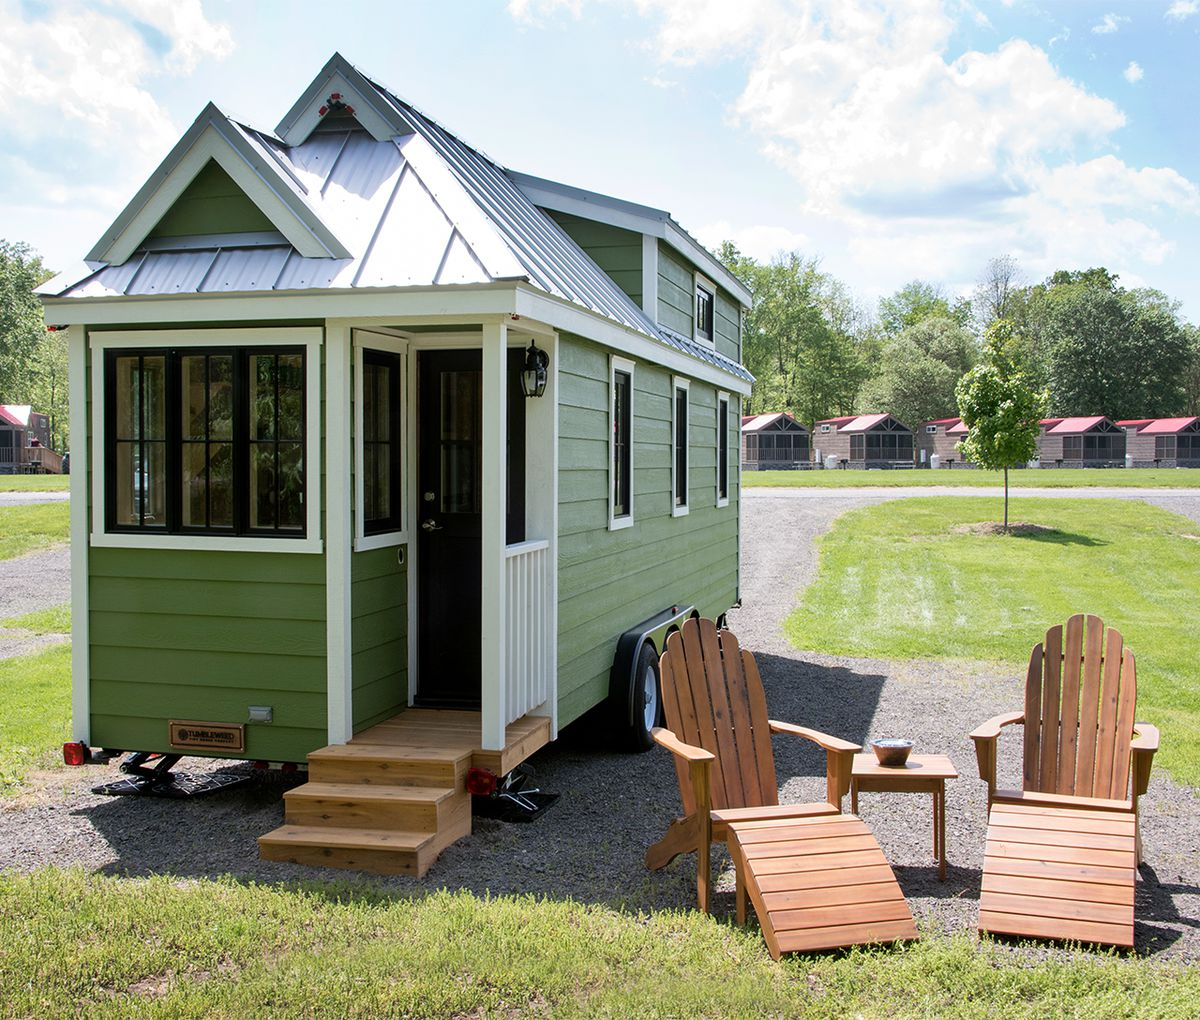 A green and white tiny home.